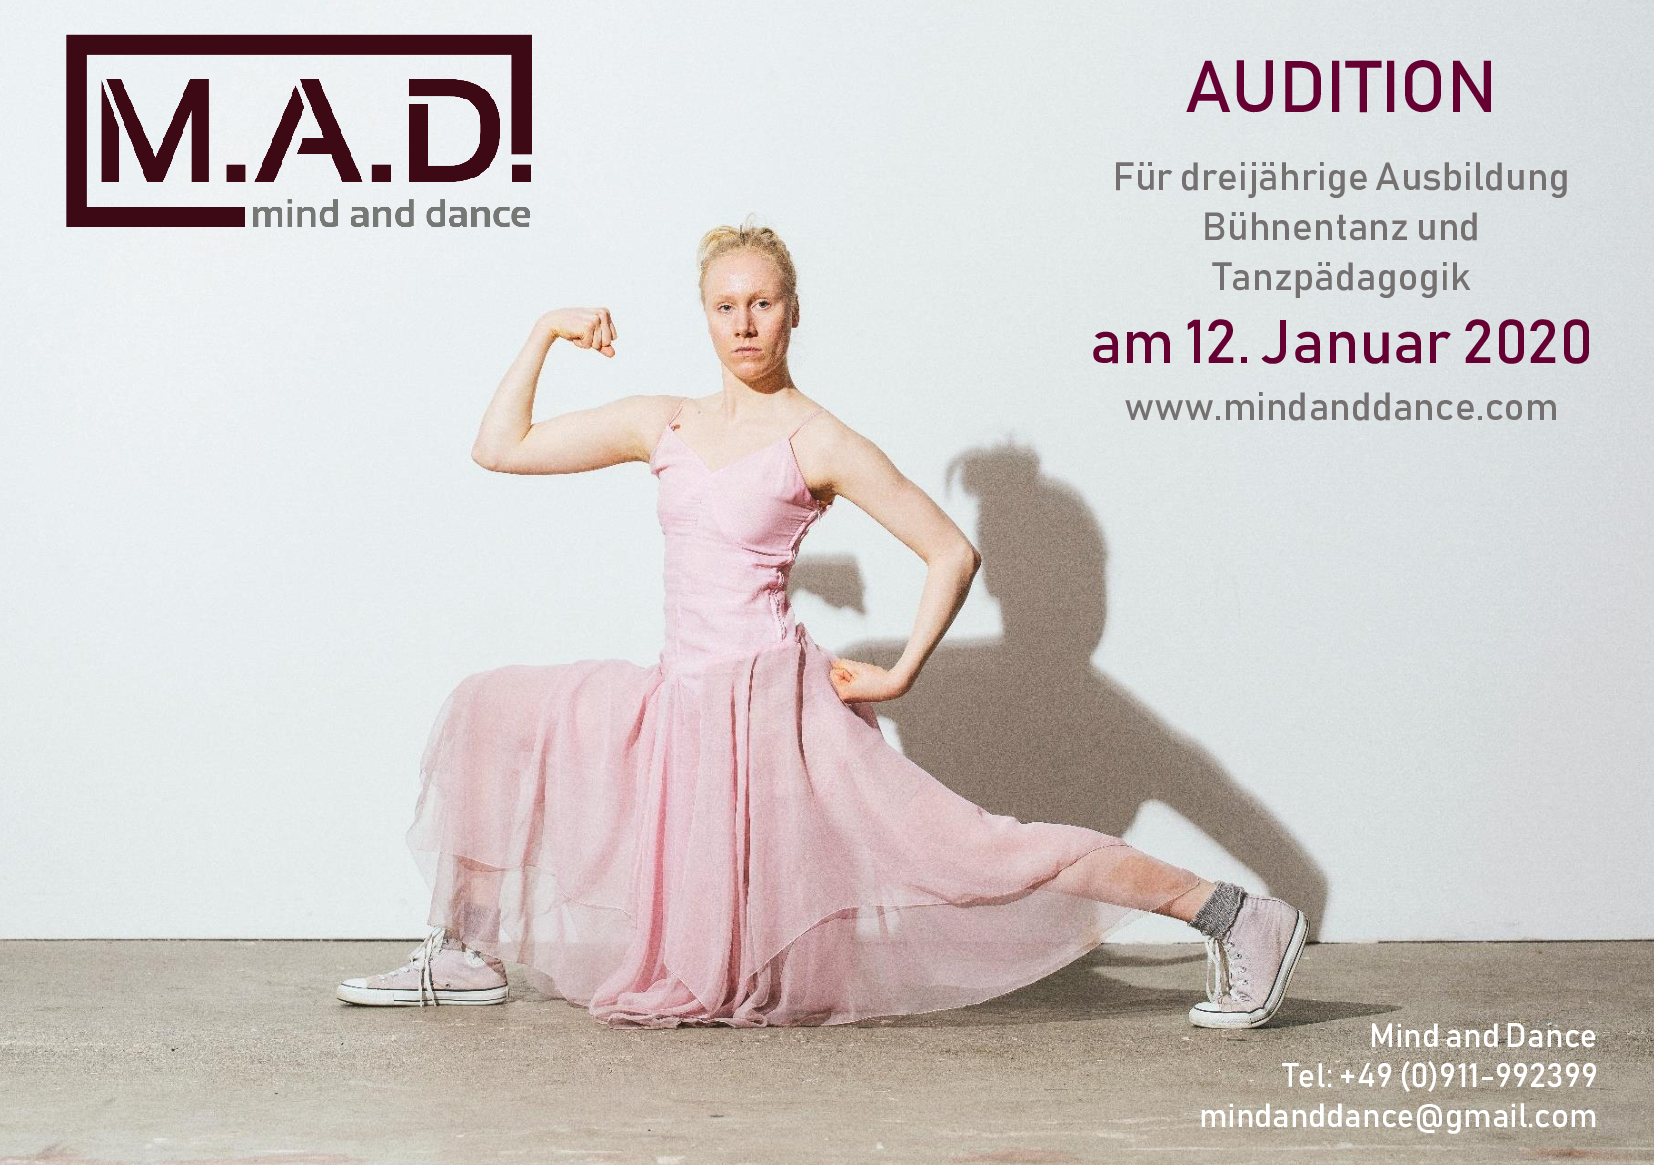 Audition-notice-12.1.2020